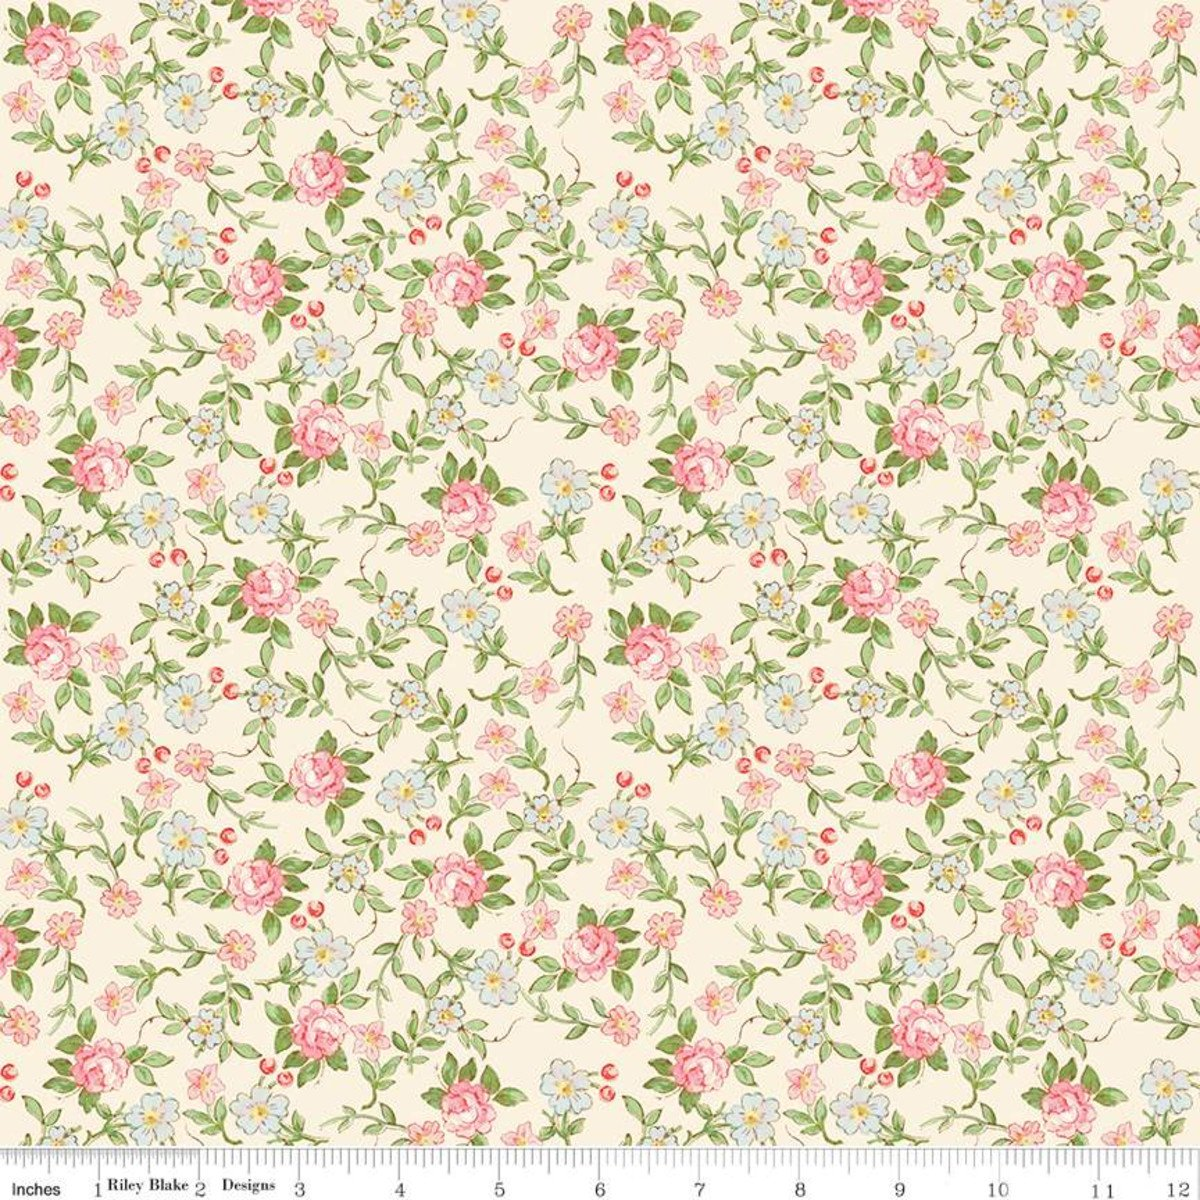 Rose & Violets Garden Sweet Blossoms Cream Fabric by Riley Blake